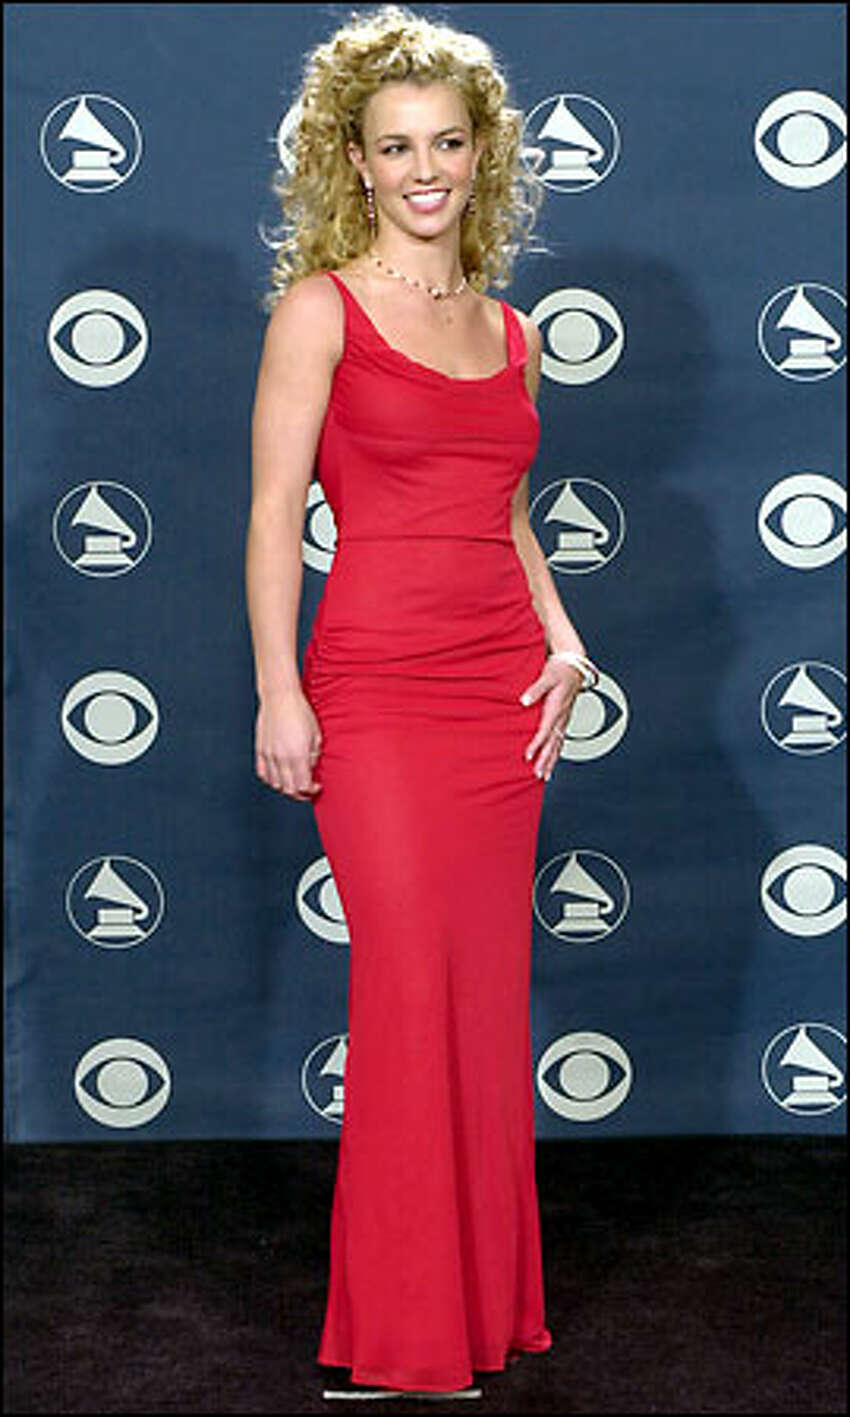 Britney Spears poses after presenting an award during the 44th annual Grammy Awards in Los Angeles.